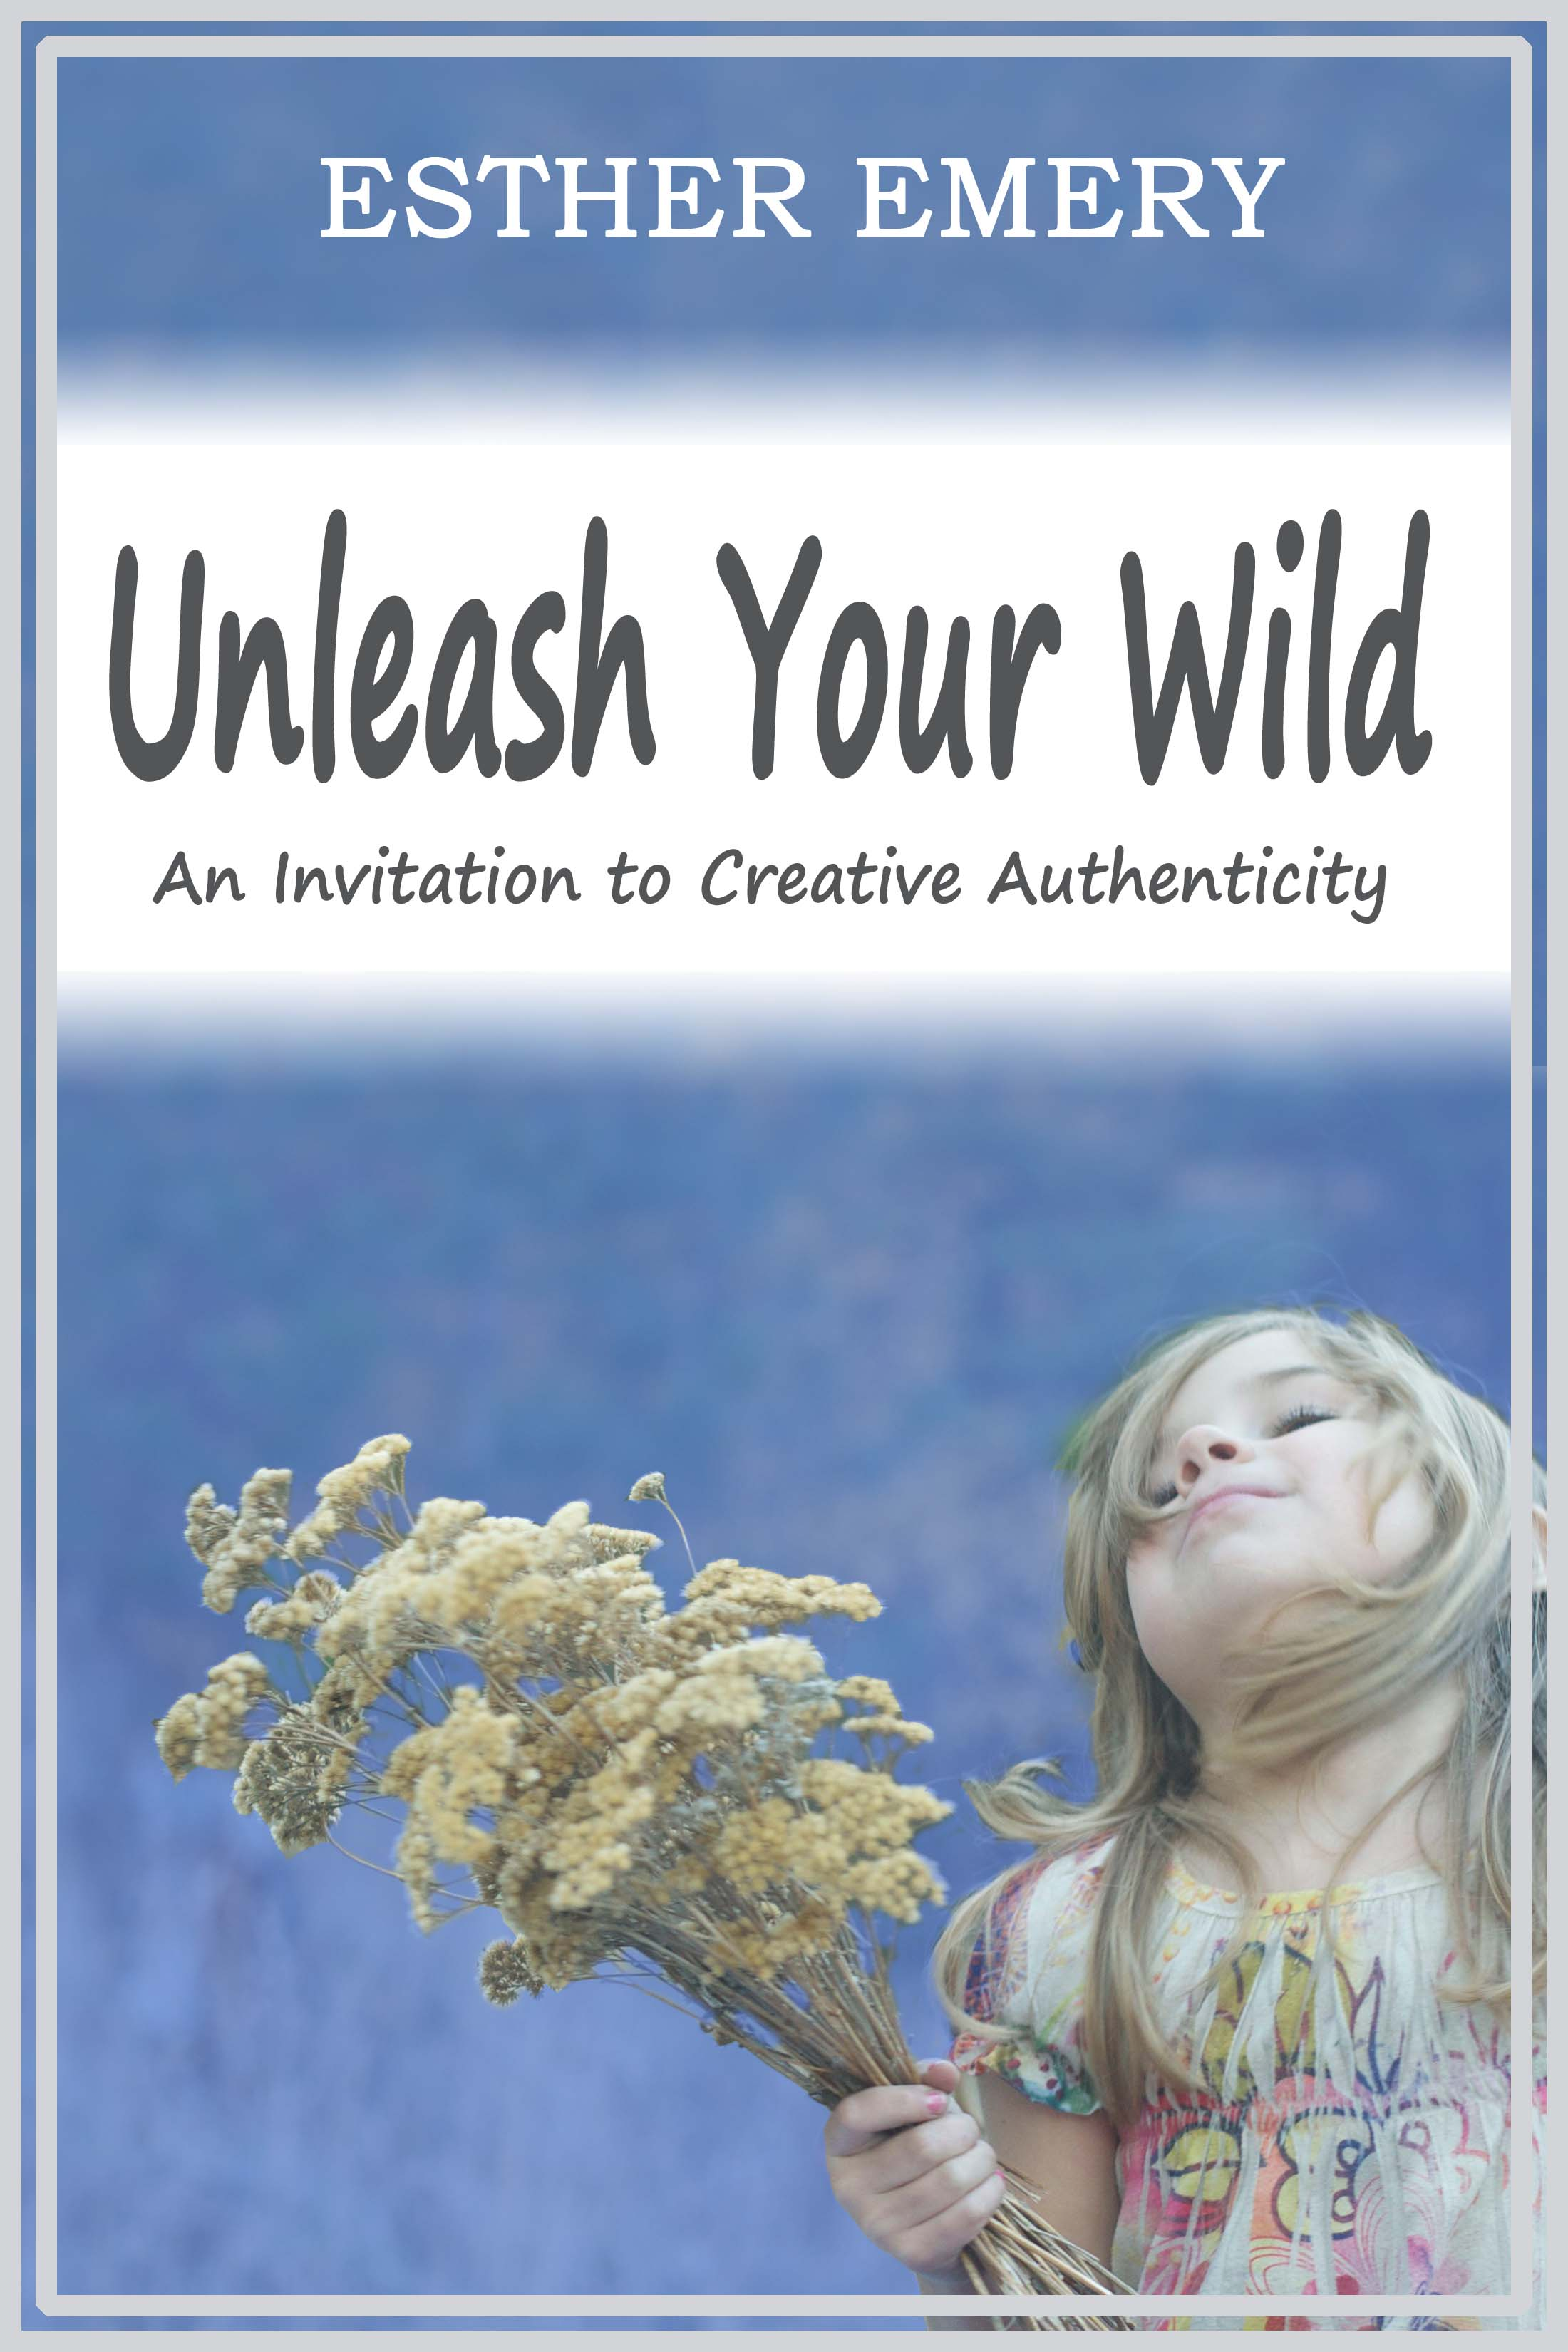 Esther Emery - Unleash Your Wild: An Invitation to Creative Authenticity